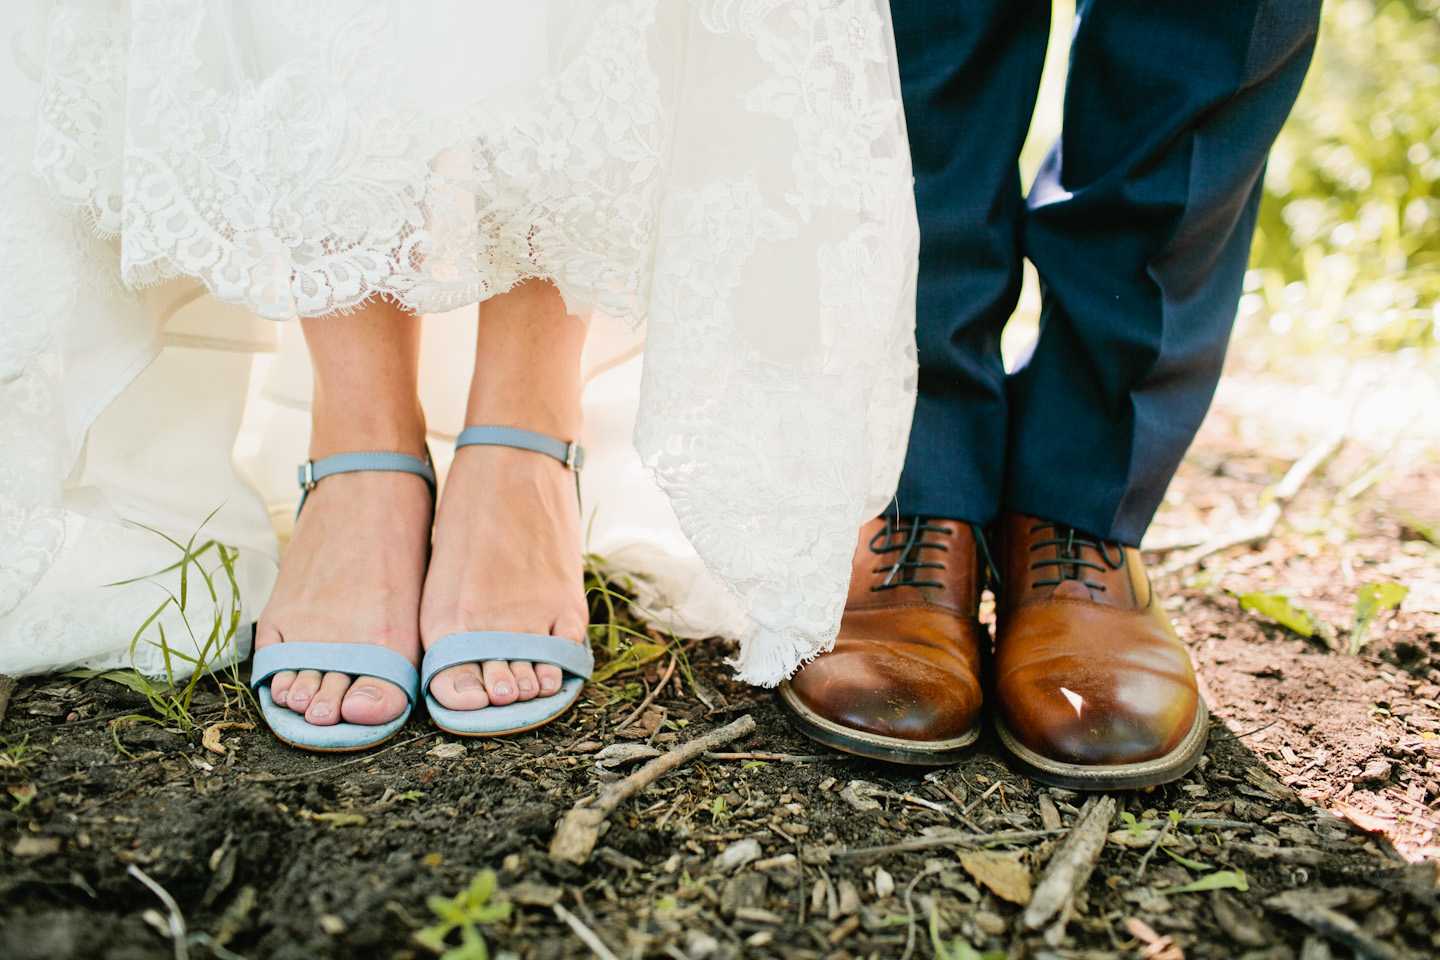 groom wearing brown shoes and bride wearing blue suede heels